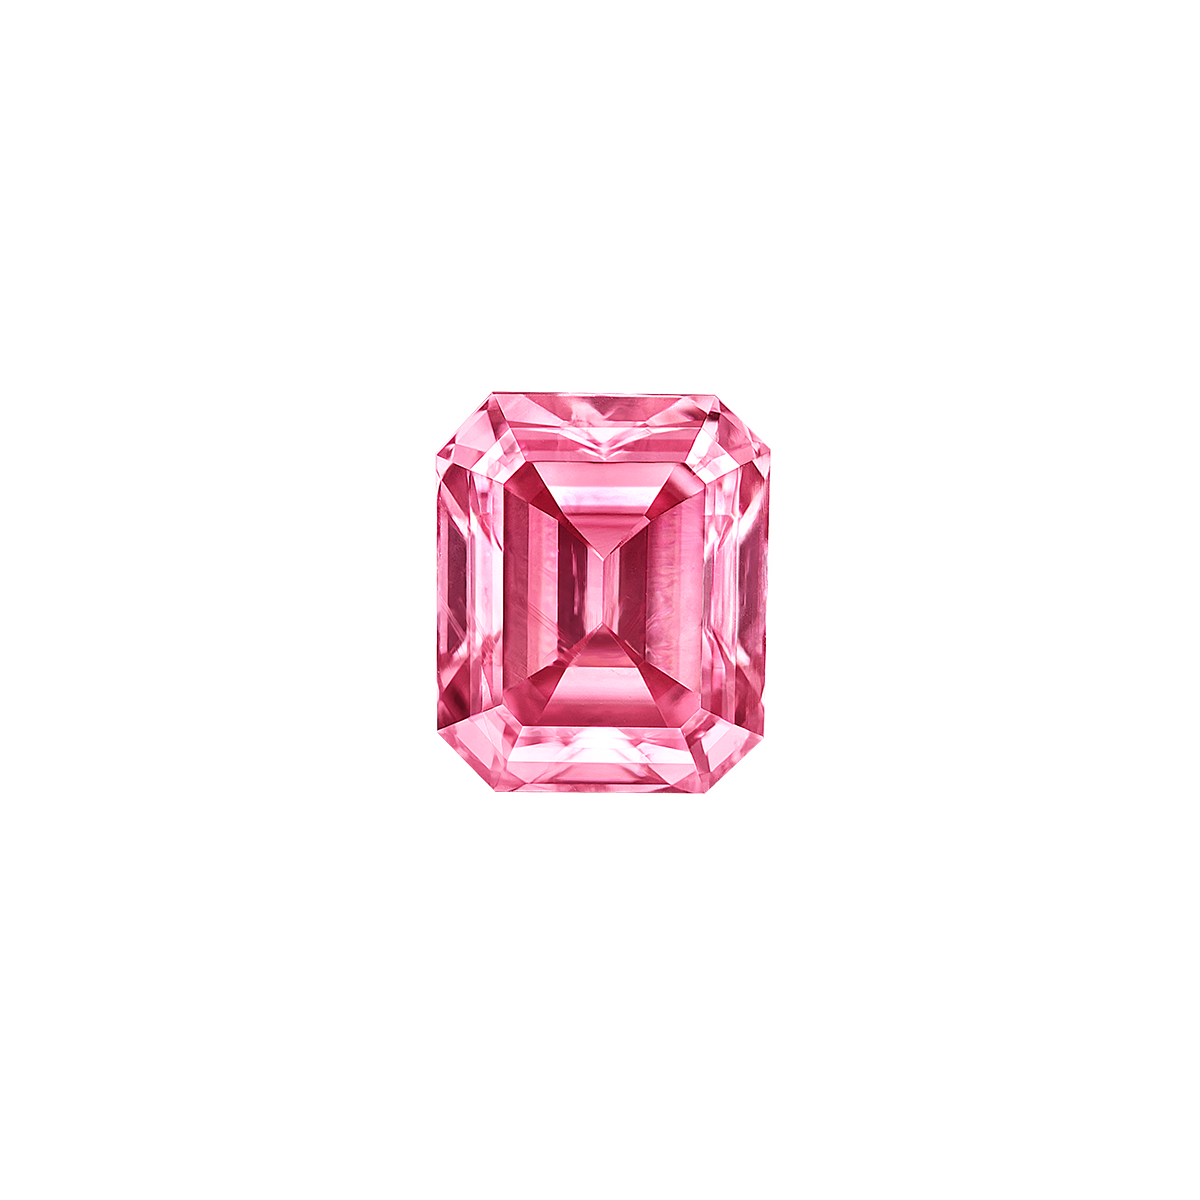 阿蓋爾濃彩粉鑽裸石